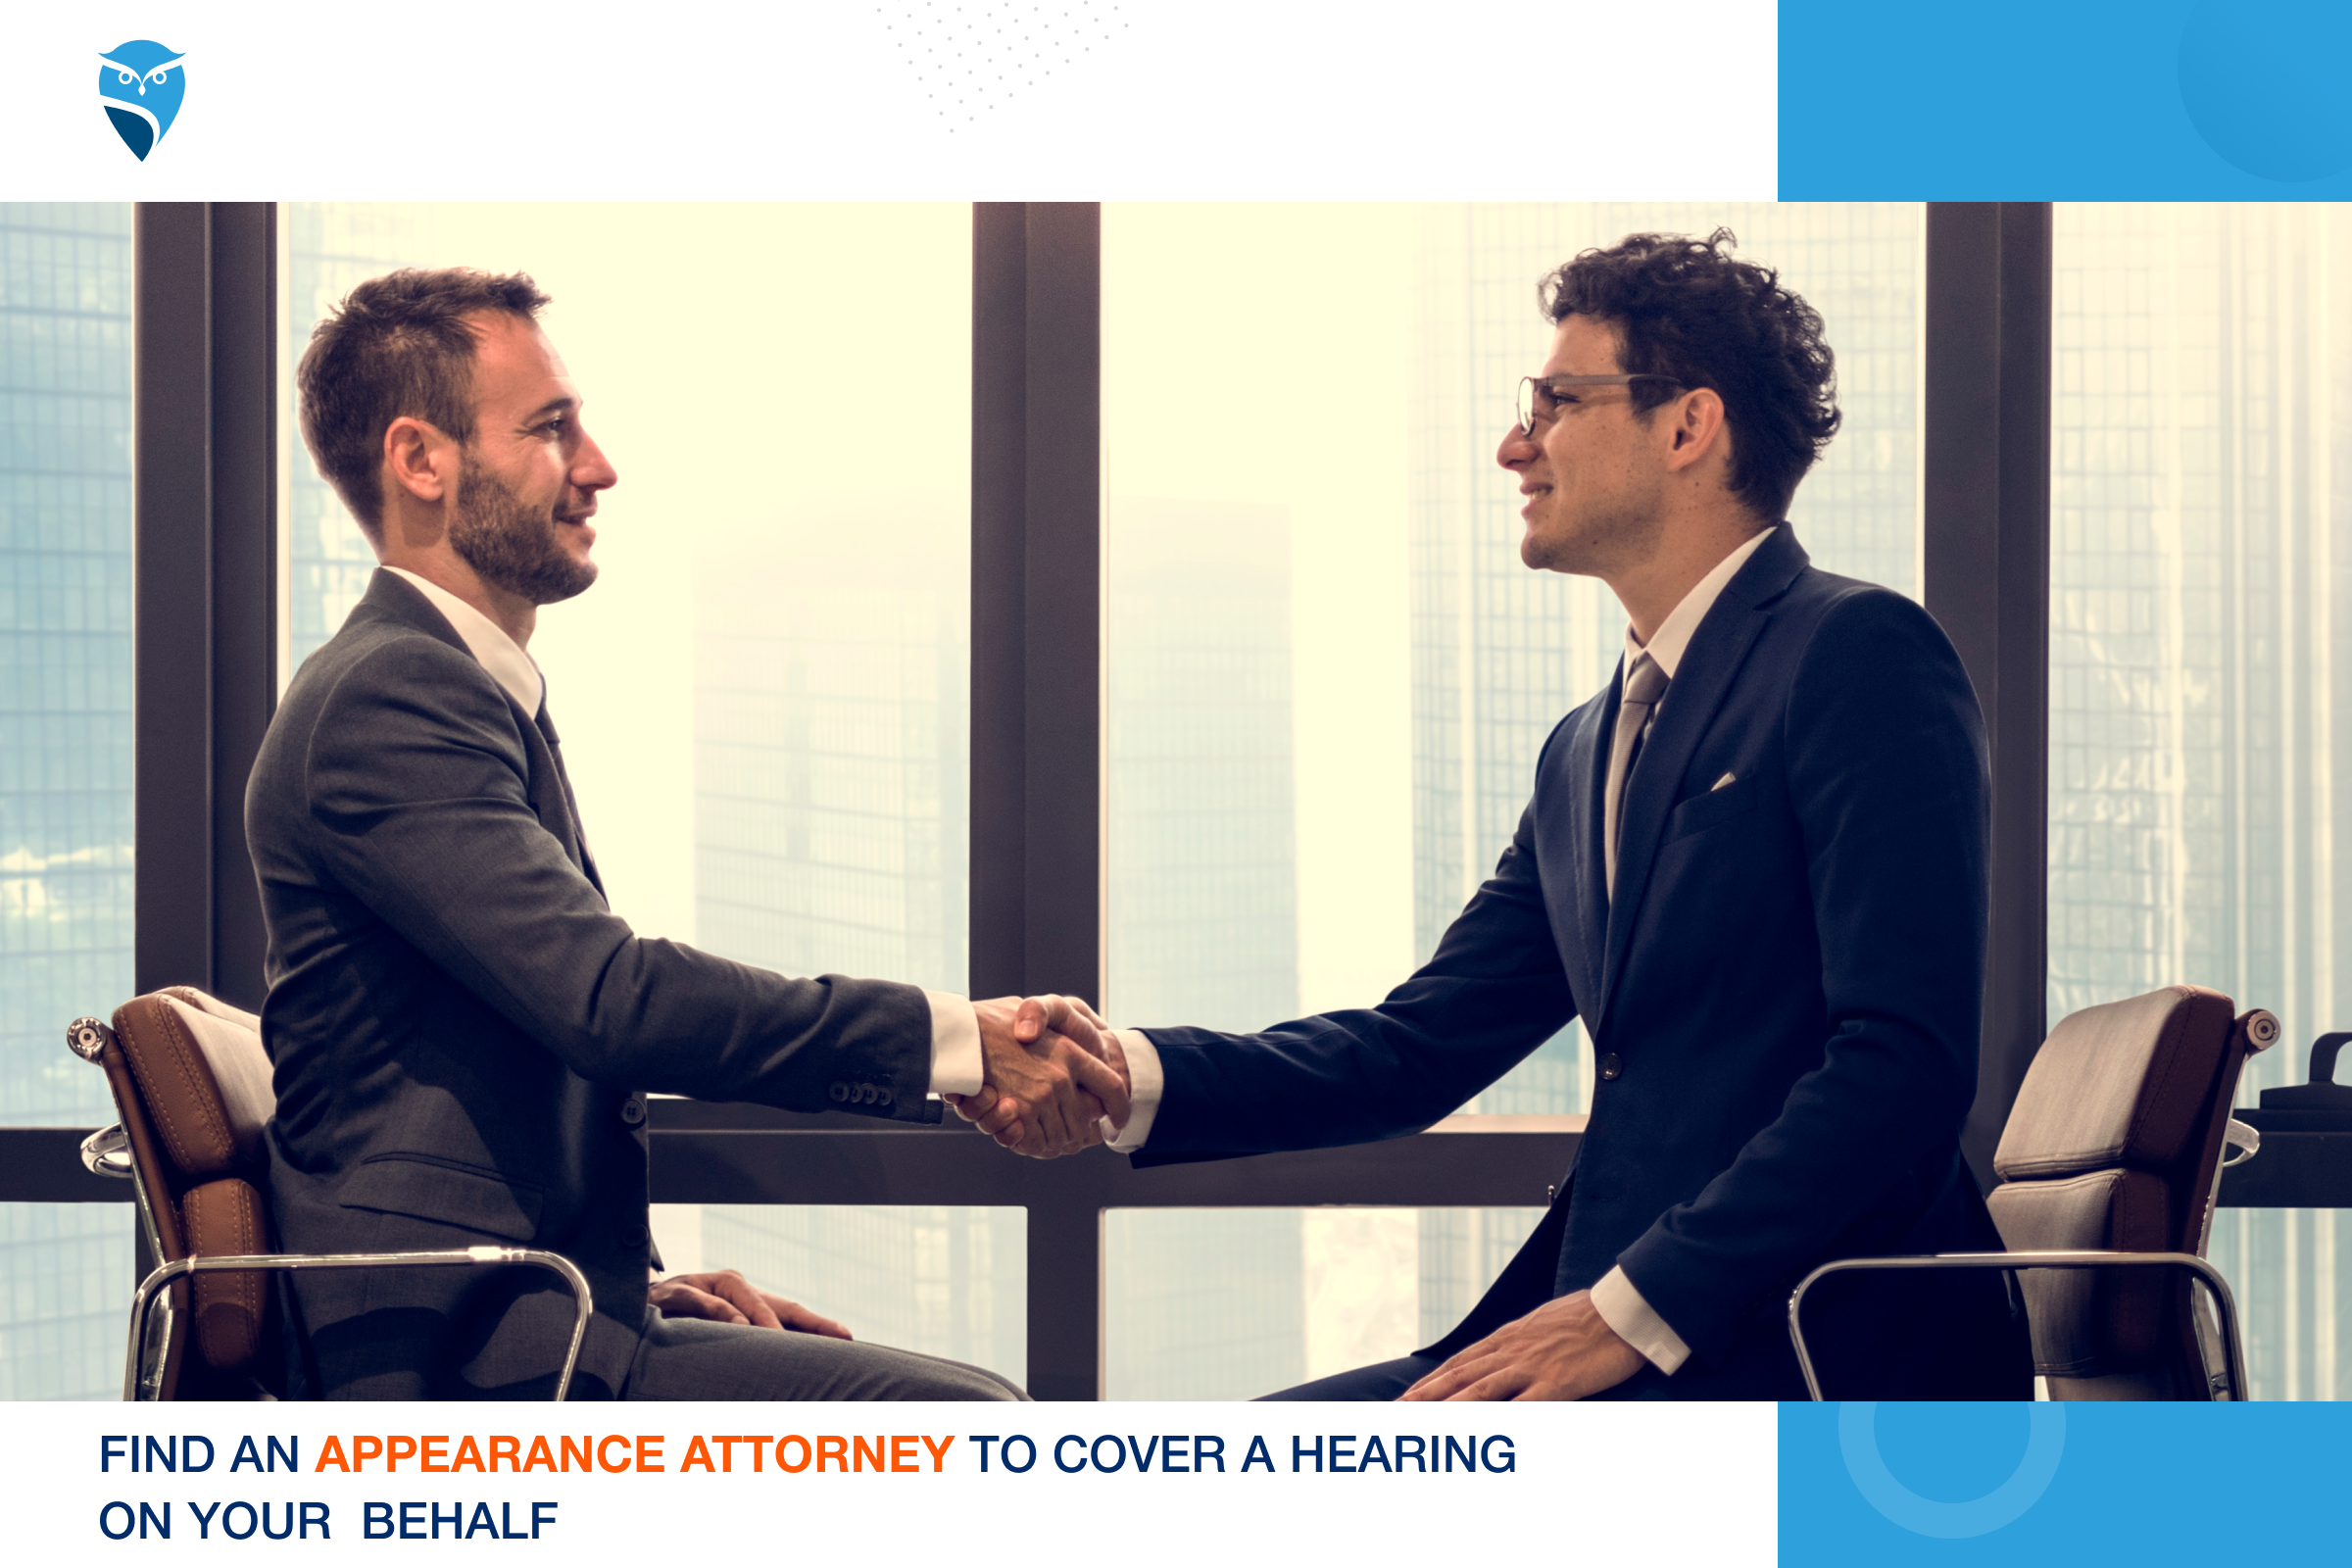 Find an Appearance Attorney to Cover a Hearing on Your Behalf